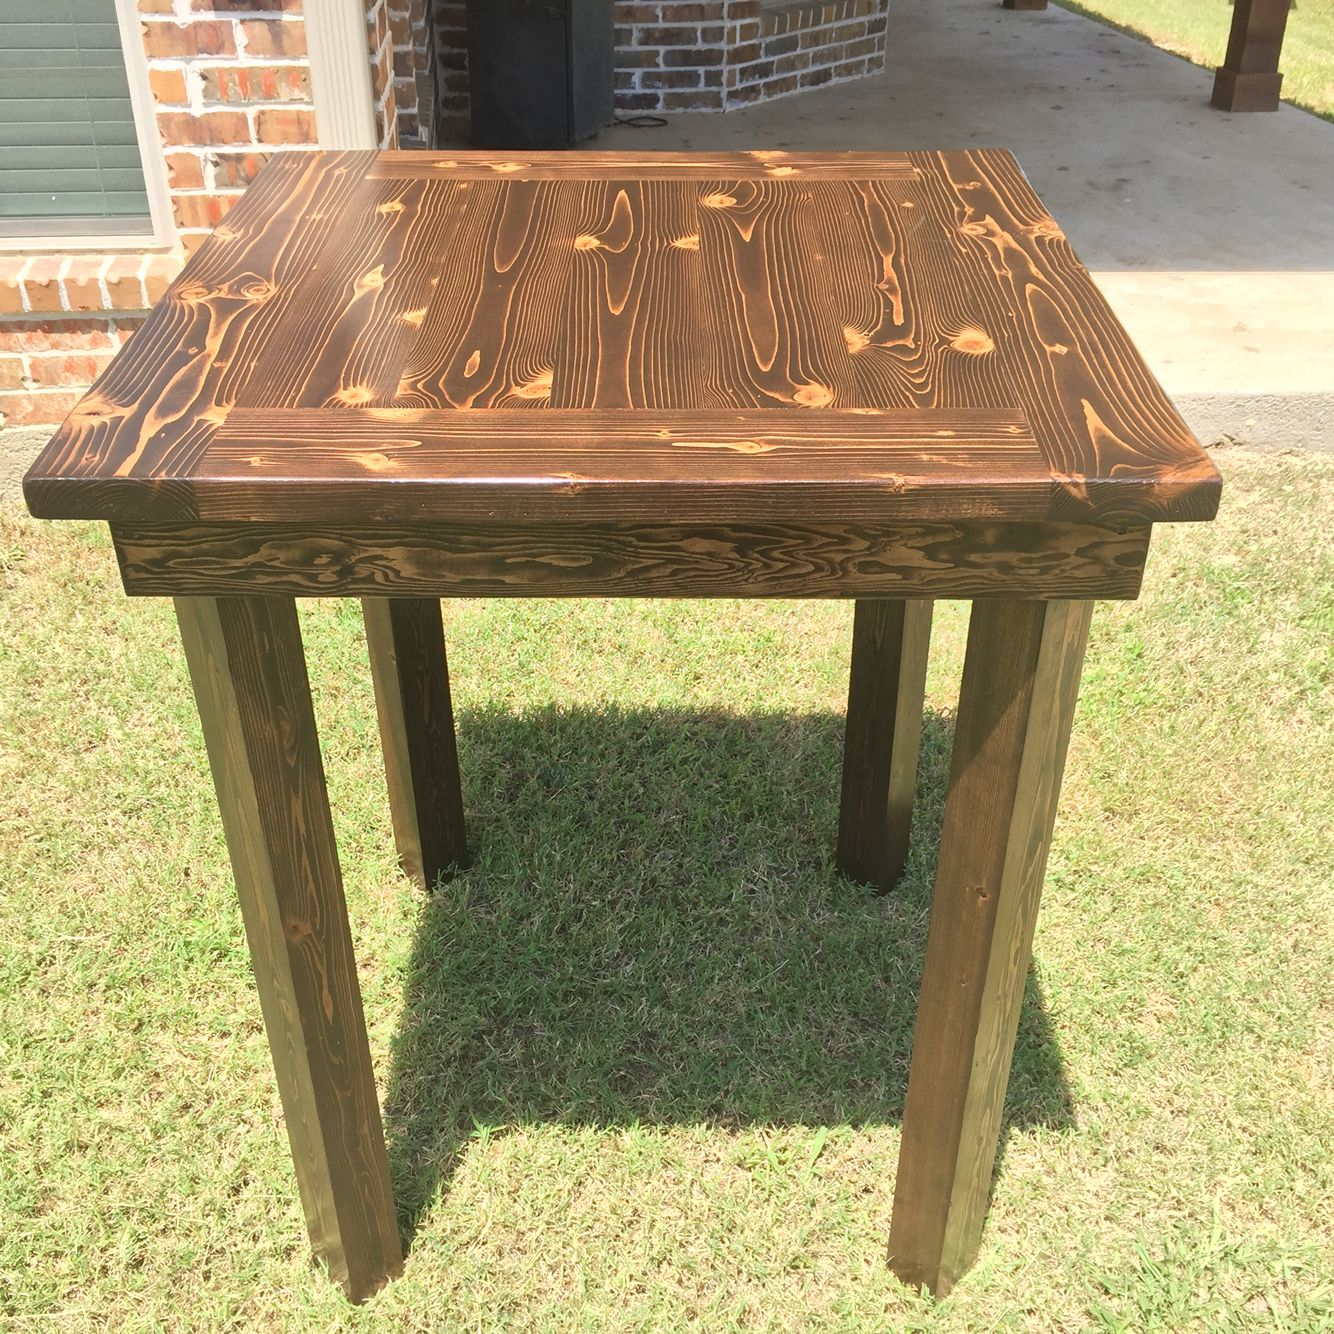 30 Square 42 Tall Pub Style High Top Table Diy 2x4 Kreg Jig Cb